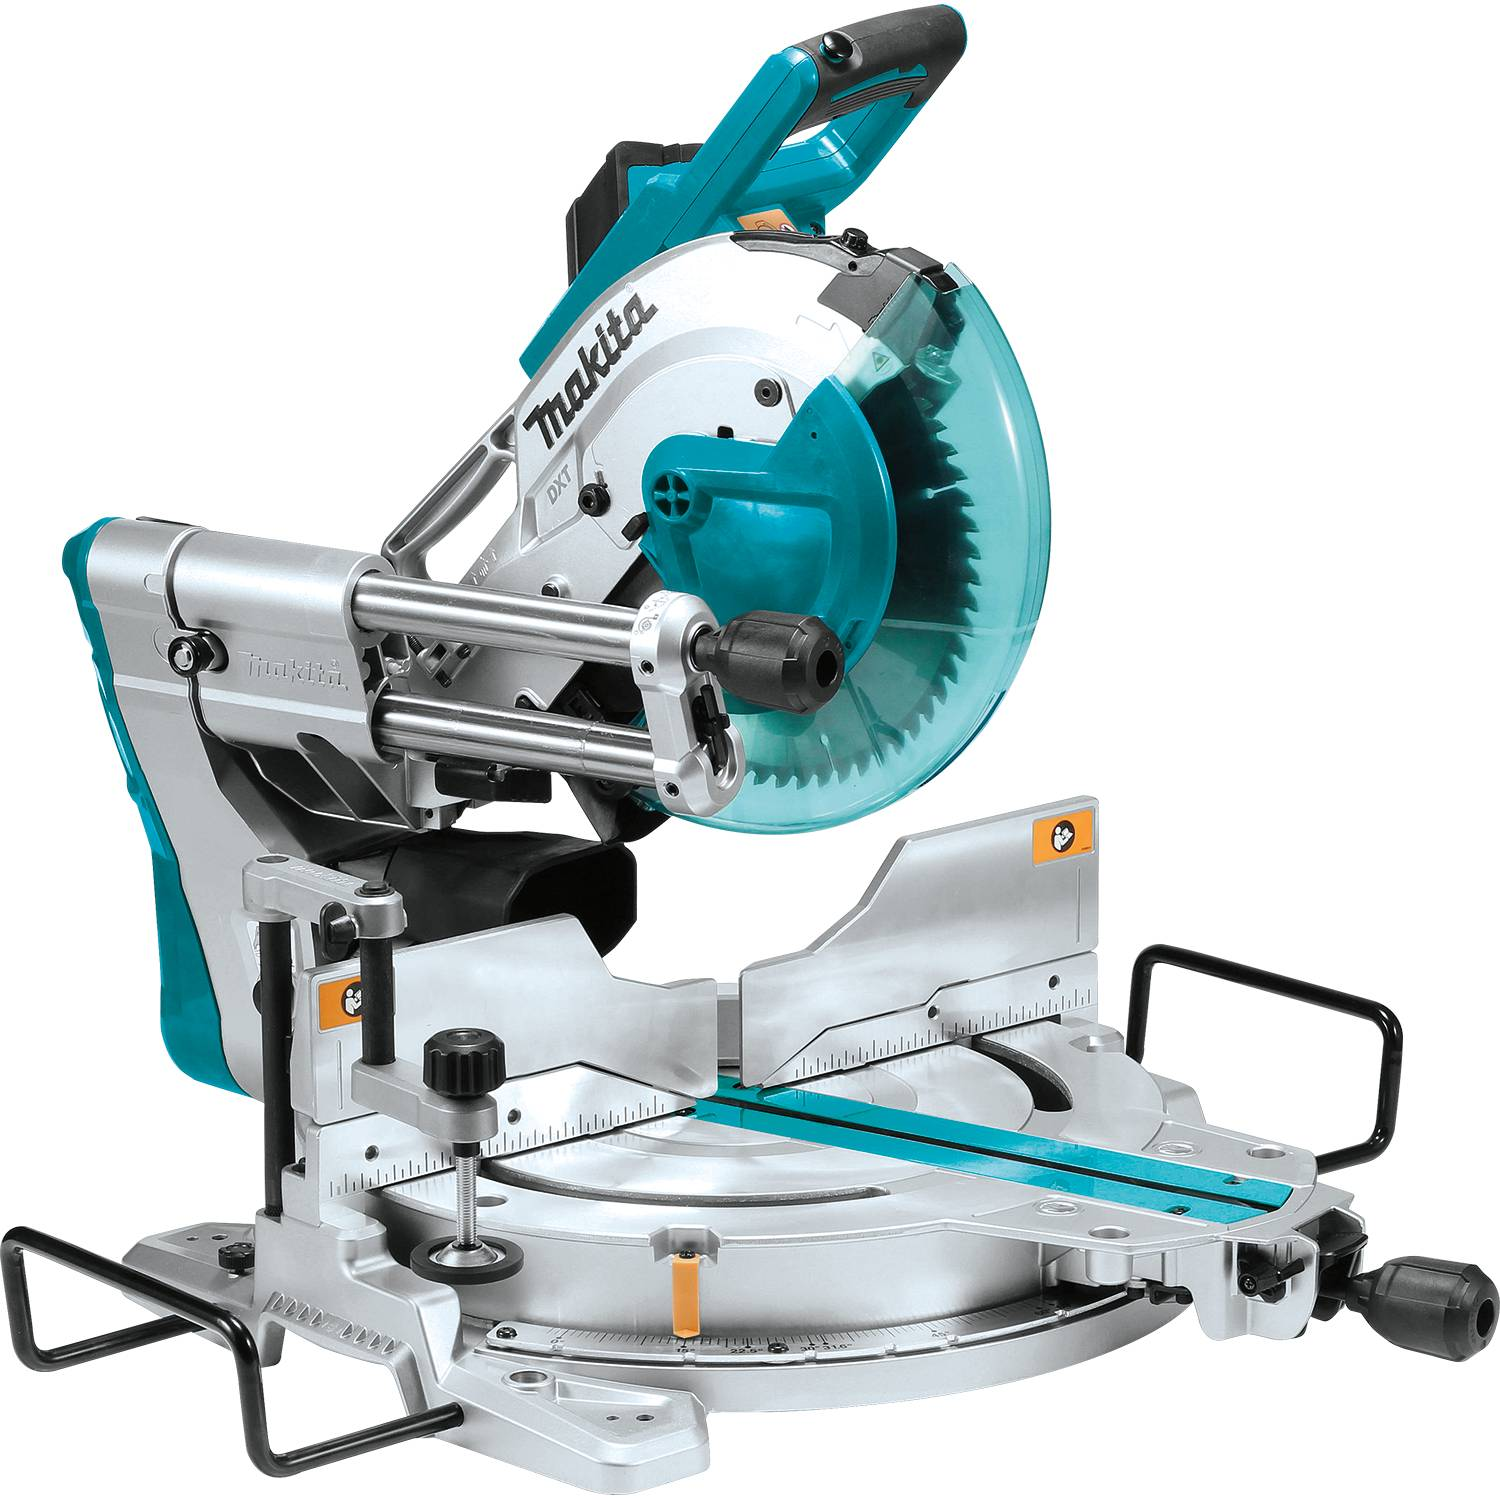 Makita LS1019L Review